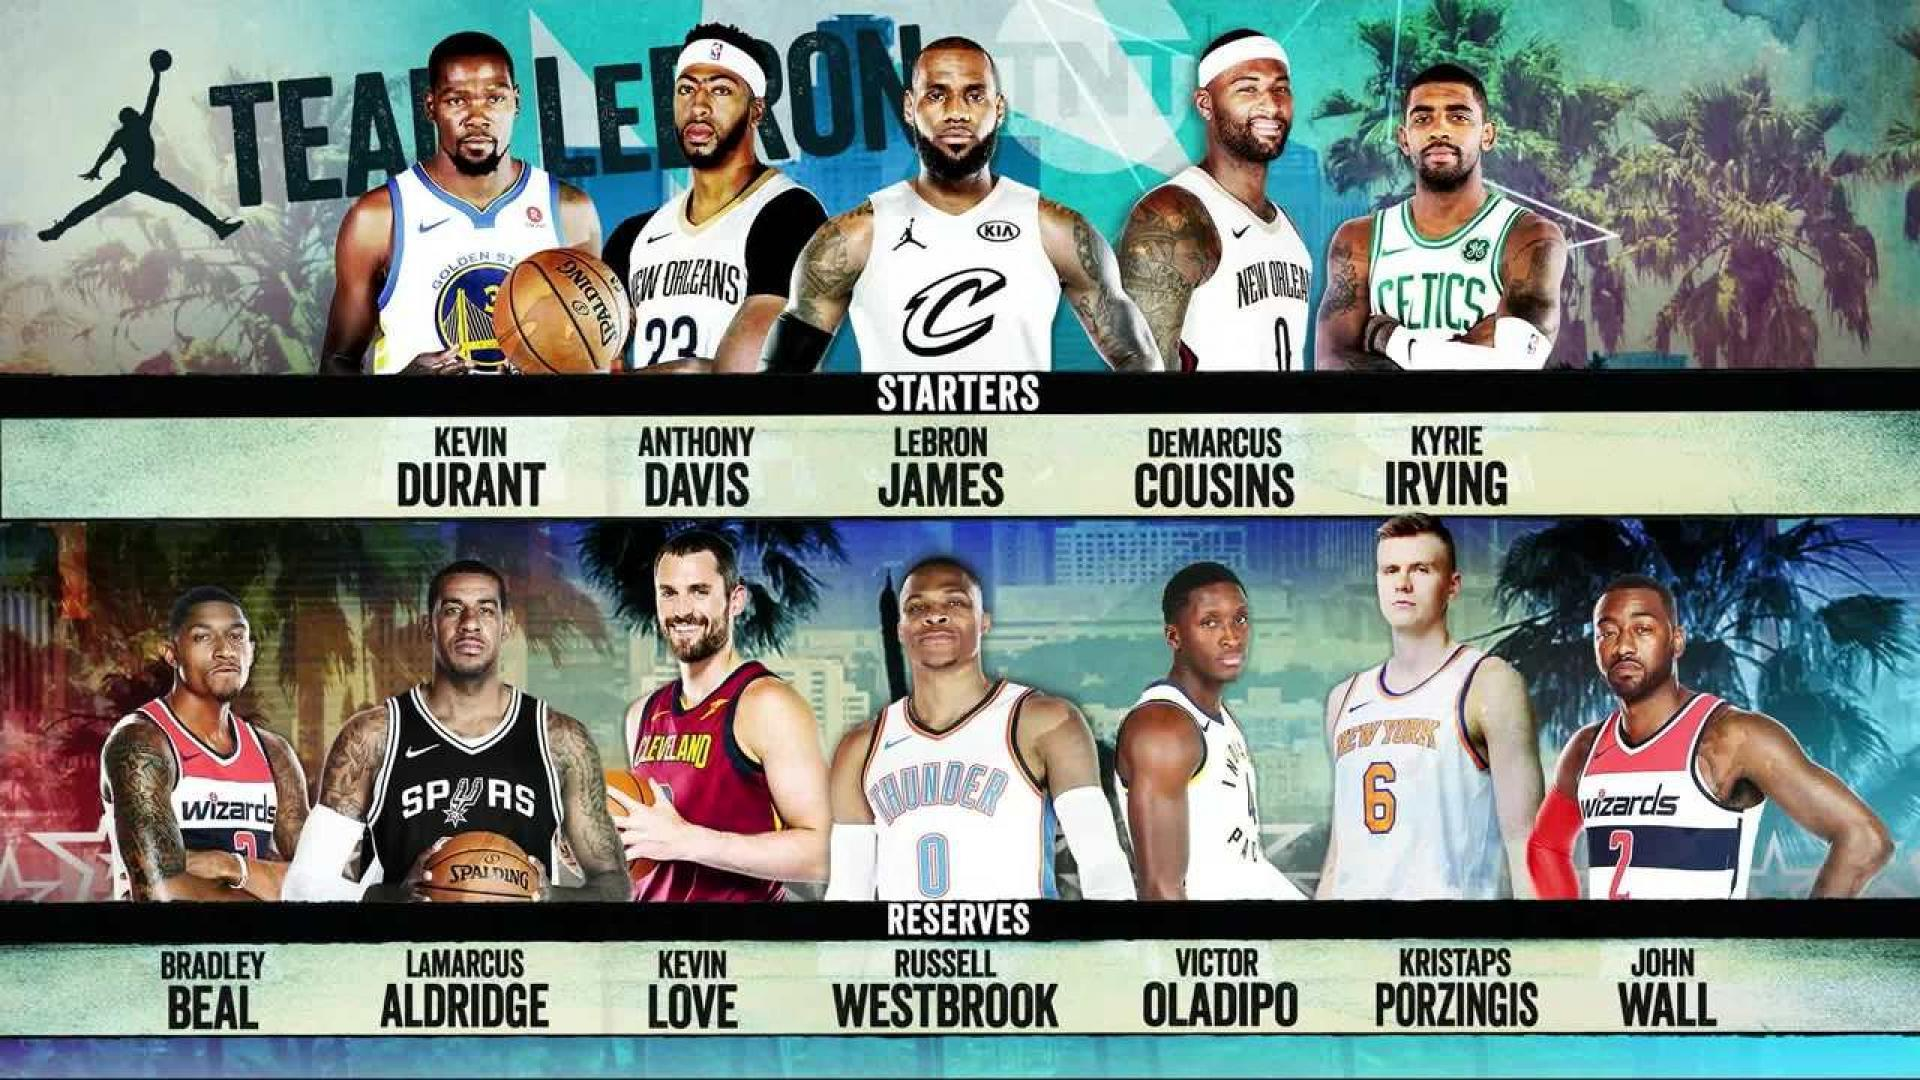 All star weekend 2019 celebrity game roster